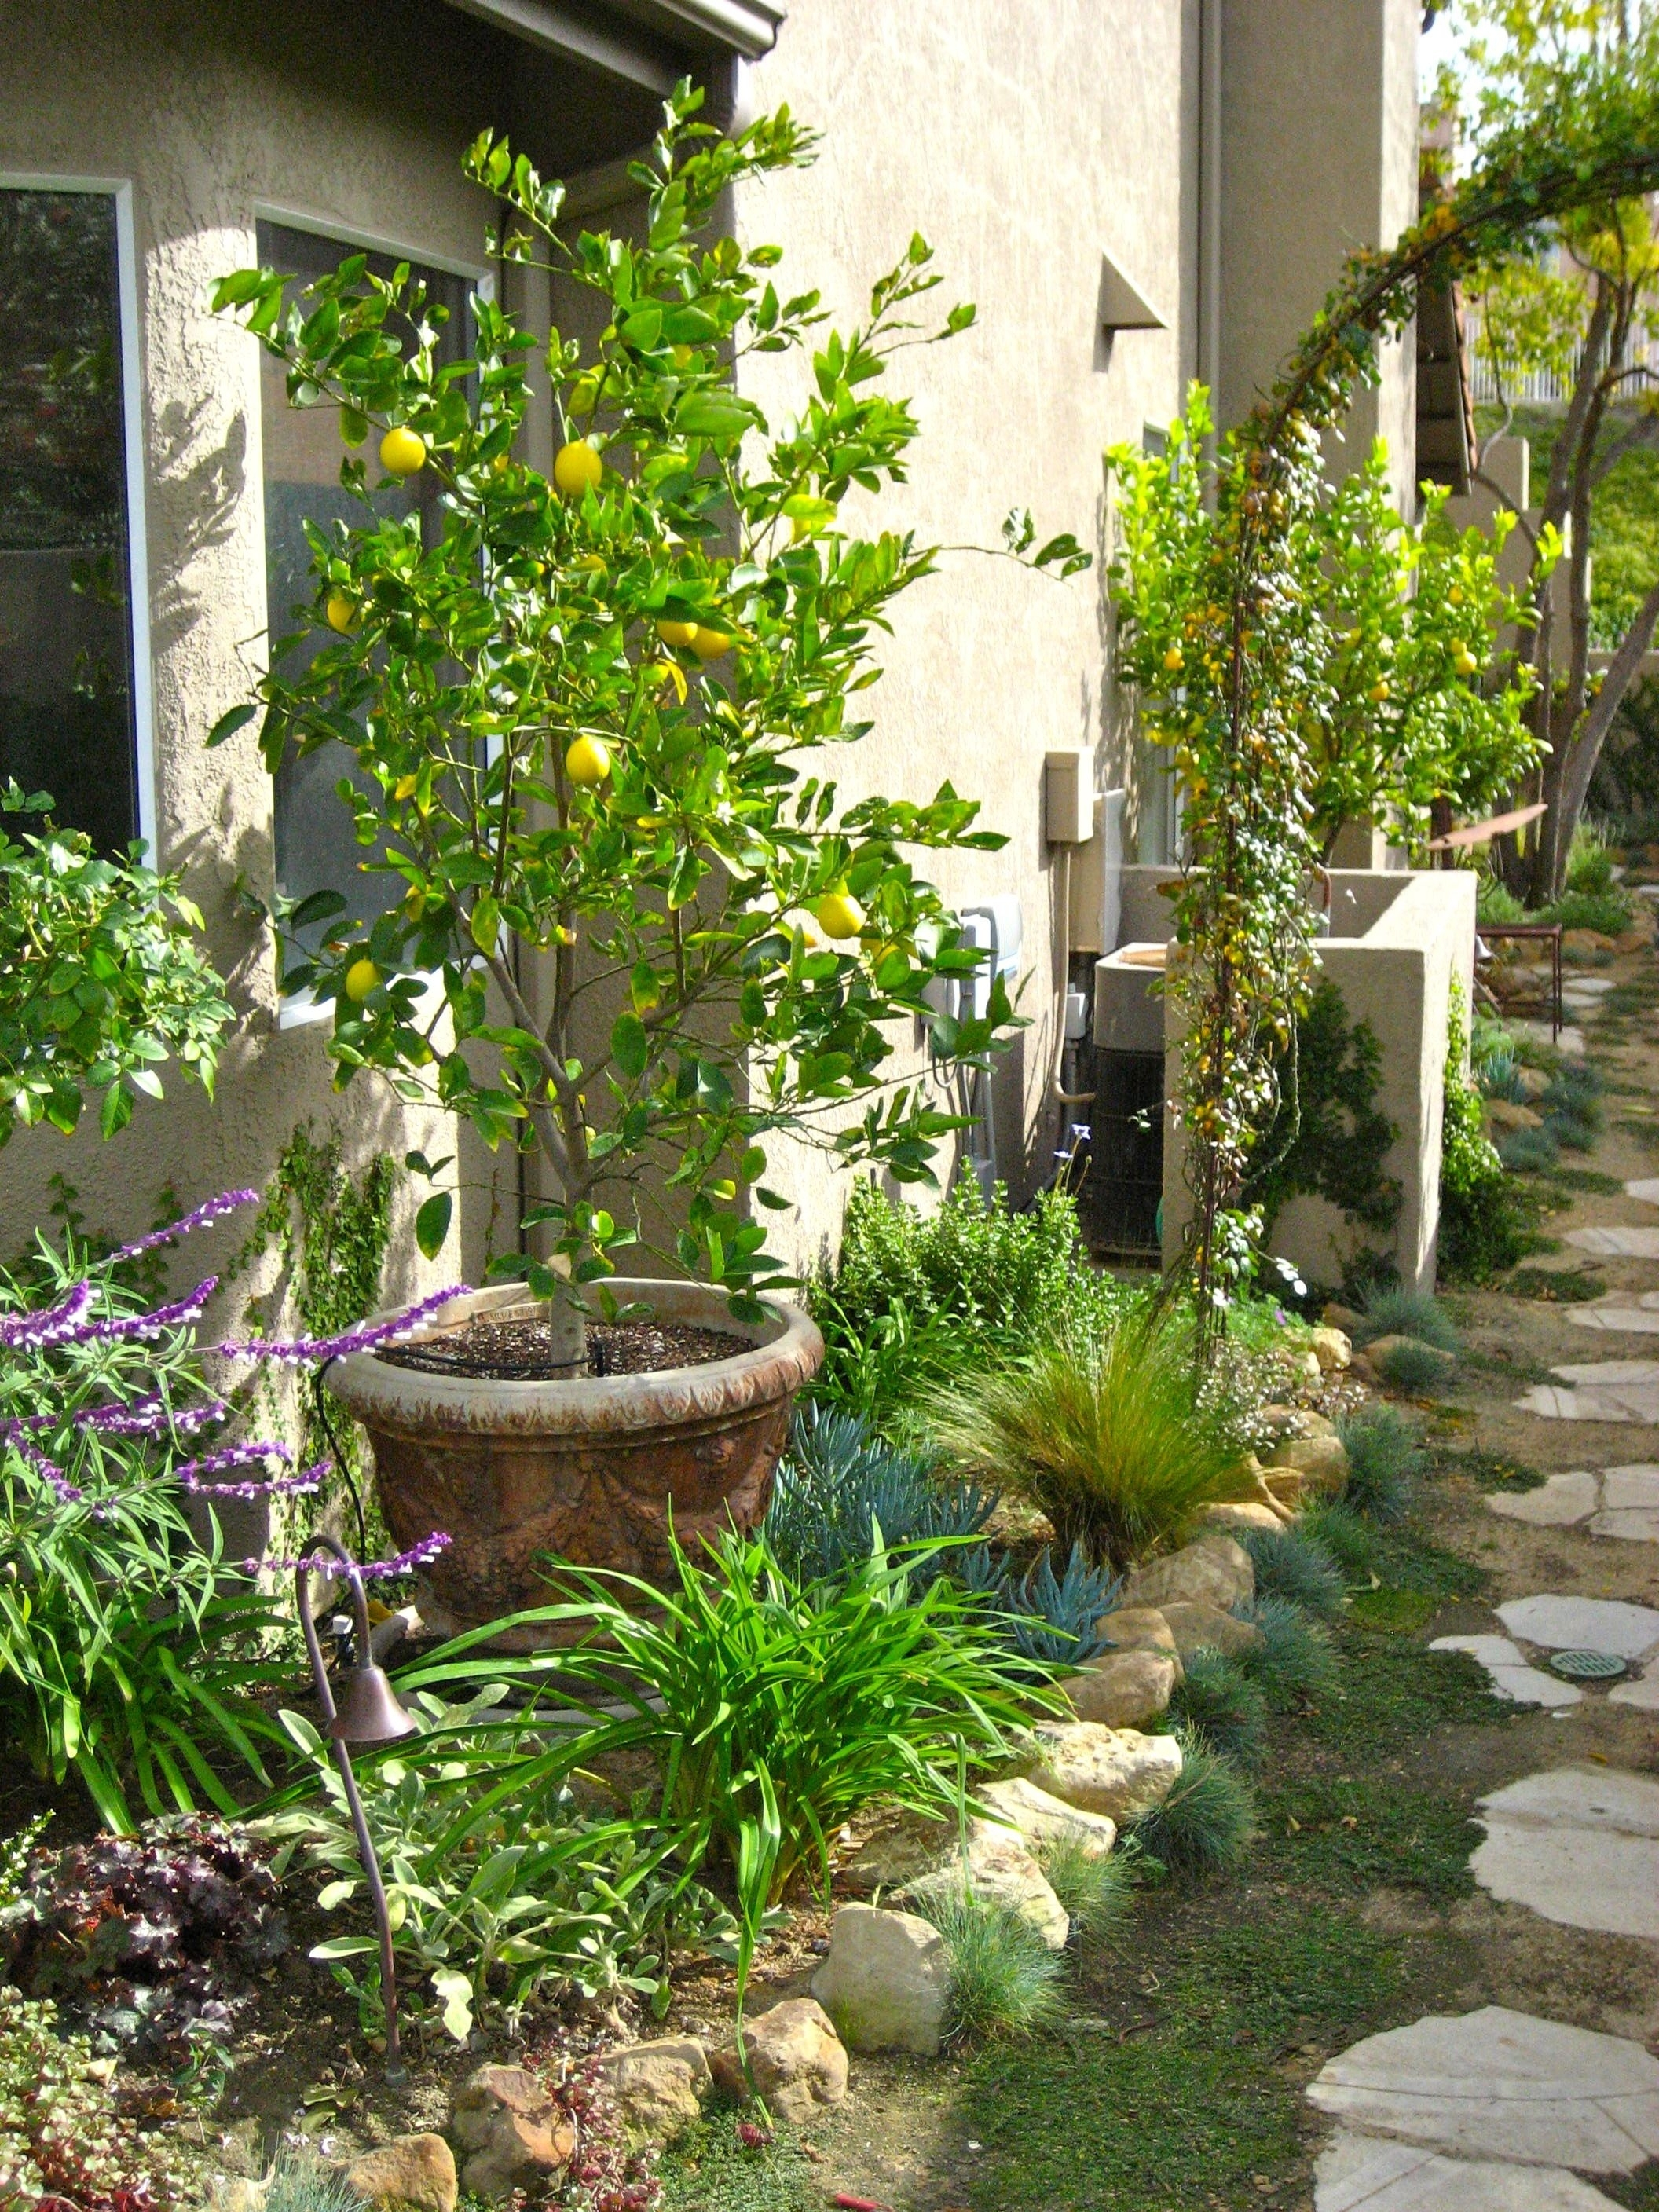 Dwarf Citrus Trees Planted In Containers Within The Small Garden Bed within Backyard Garden Center Arcadia Wi